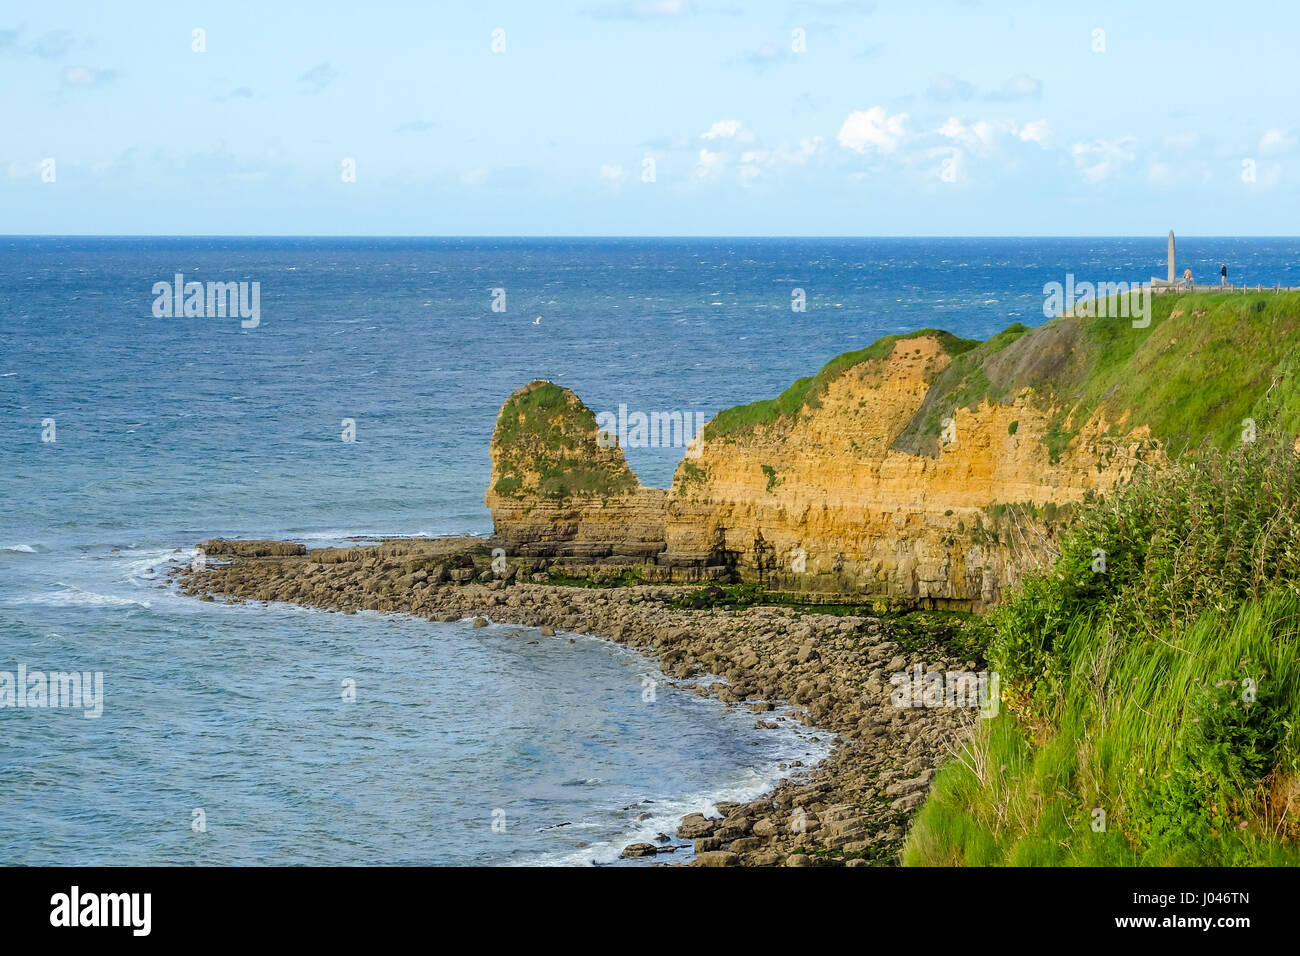 Pointe du Hoc, coast in Normandy site of allied invasion during D-day of World War II, monument to Rangers. Stock Photo